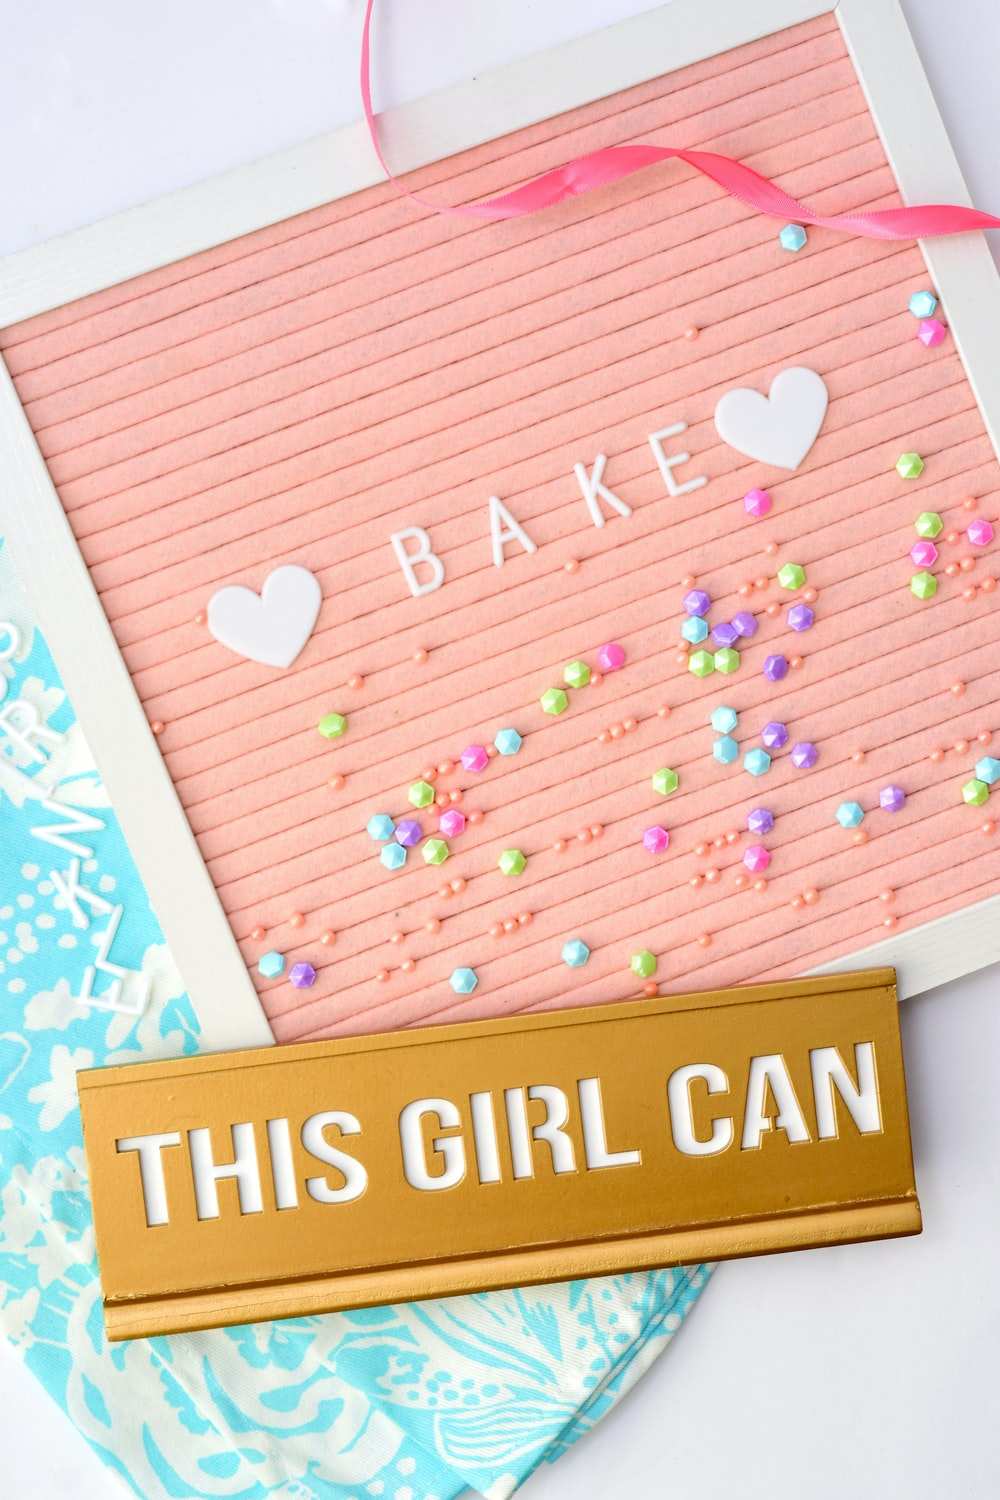 white and pink wooden bake sign